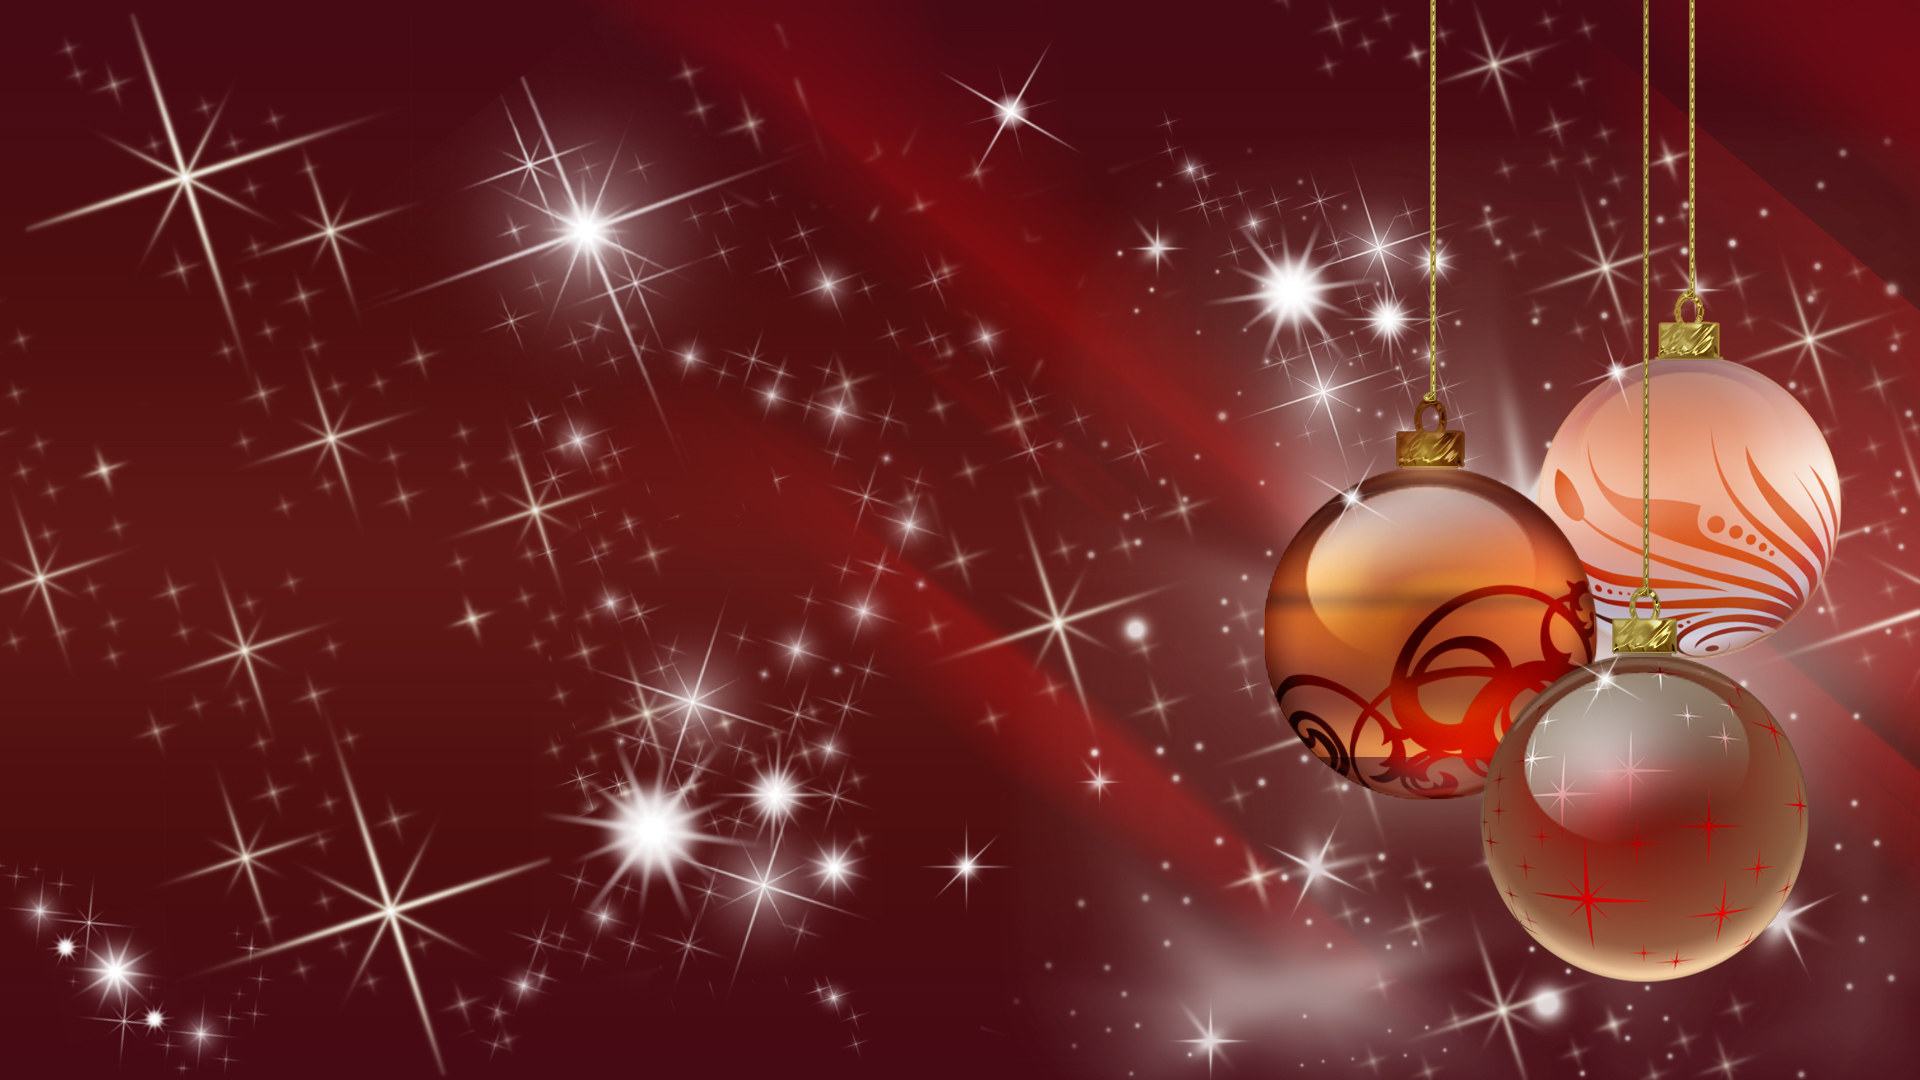 Free Christmas Wallpaper for your Desktop | Just Marya Now